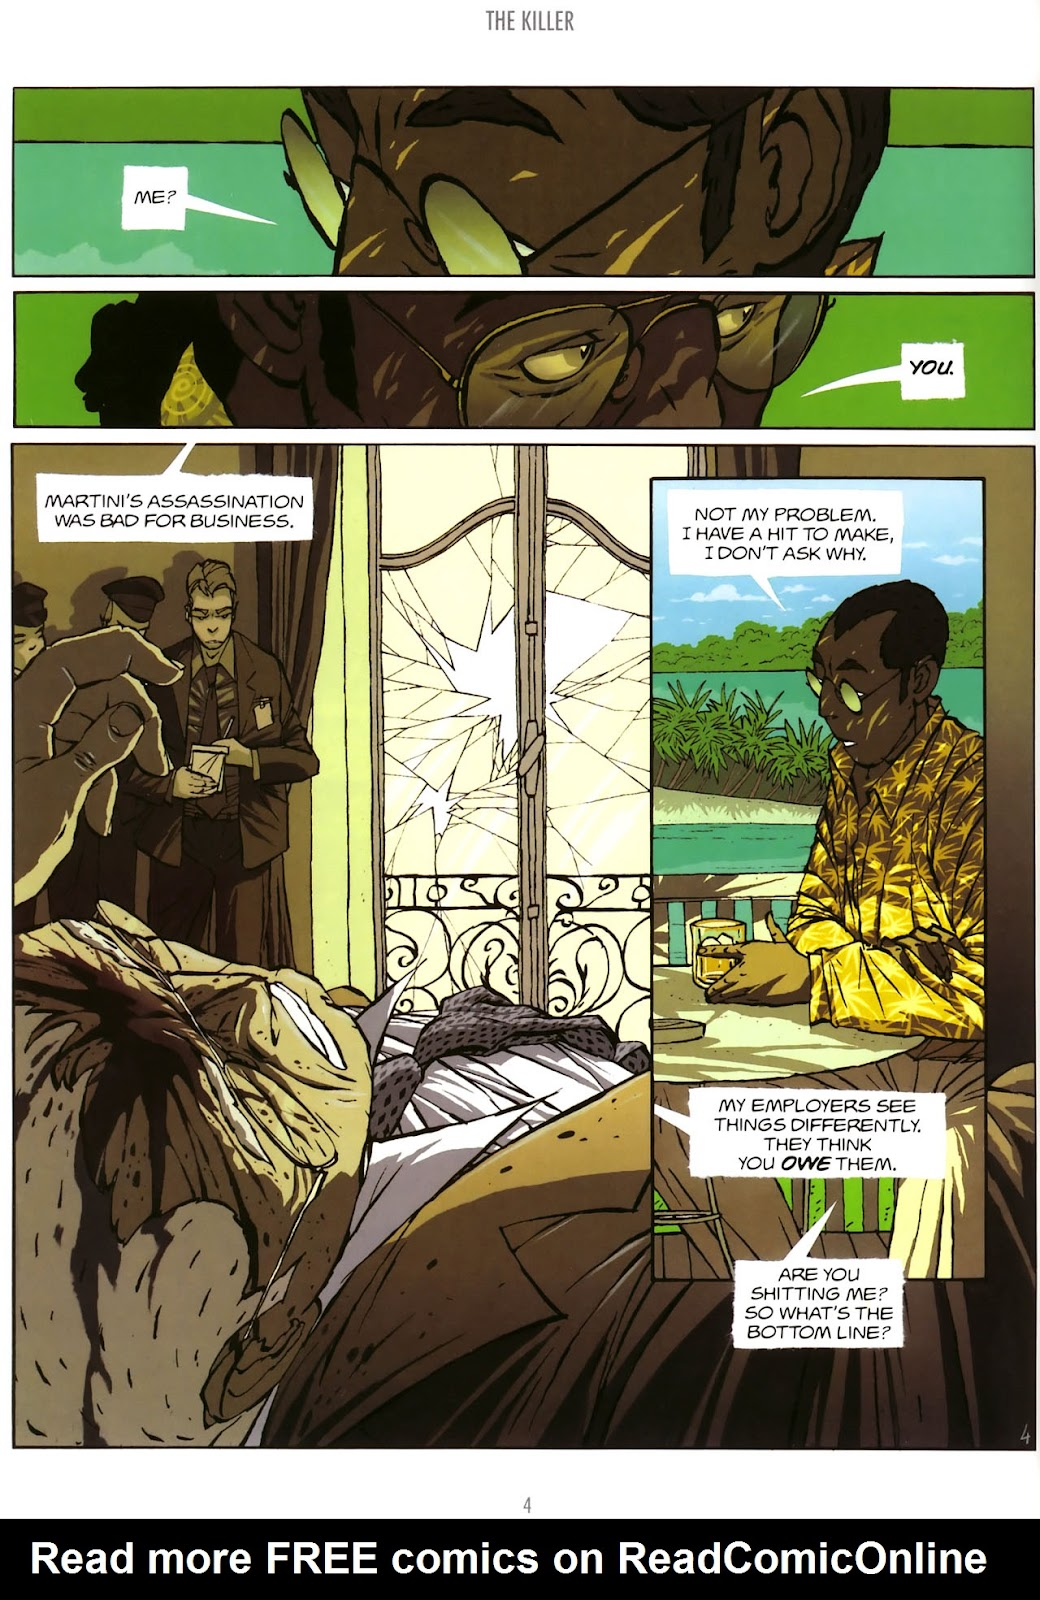 Read online The Killer comic -  Issue #5 - 6